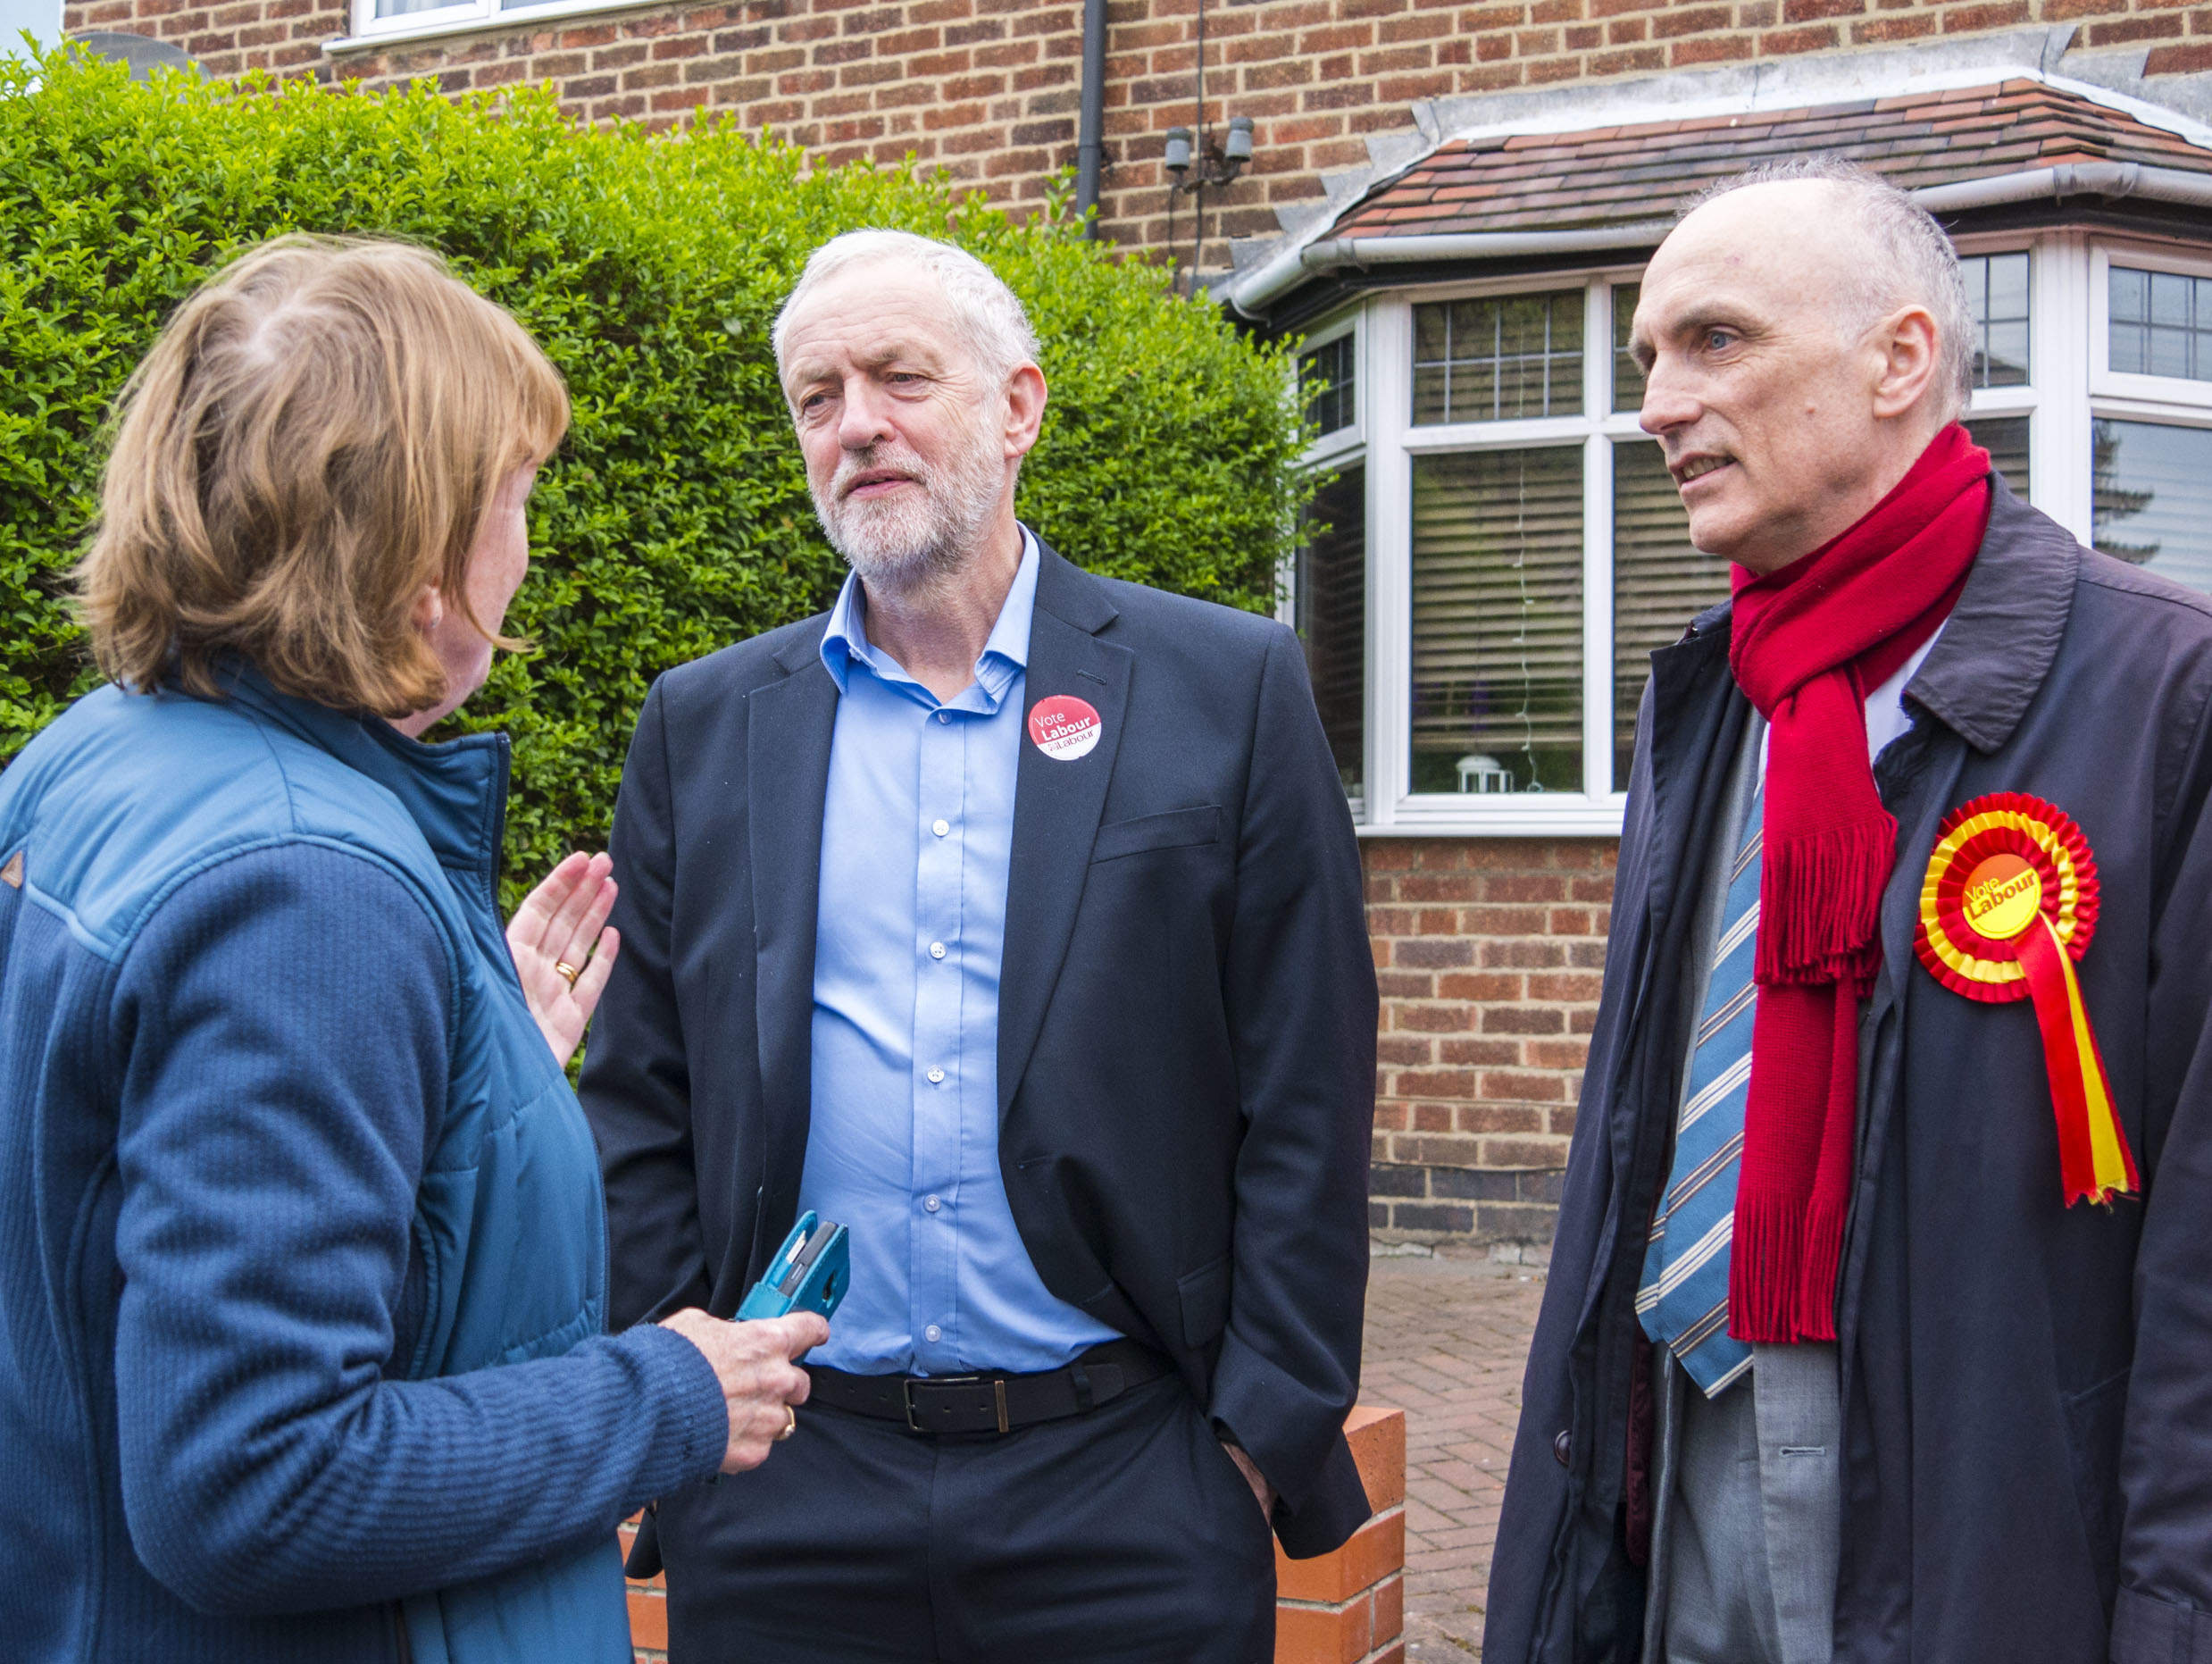 Life as Labour's most pro-Jeremy Corbyn candidate in England's most marginal constituency